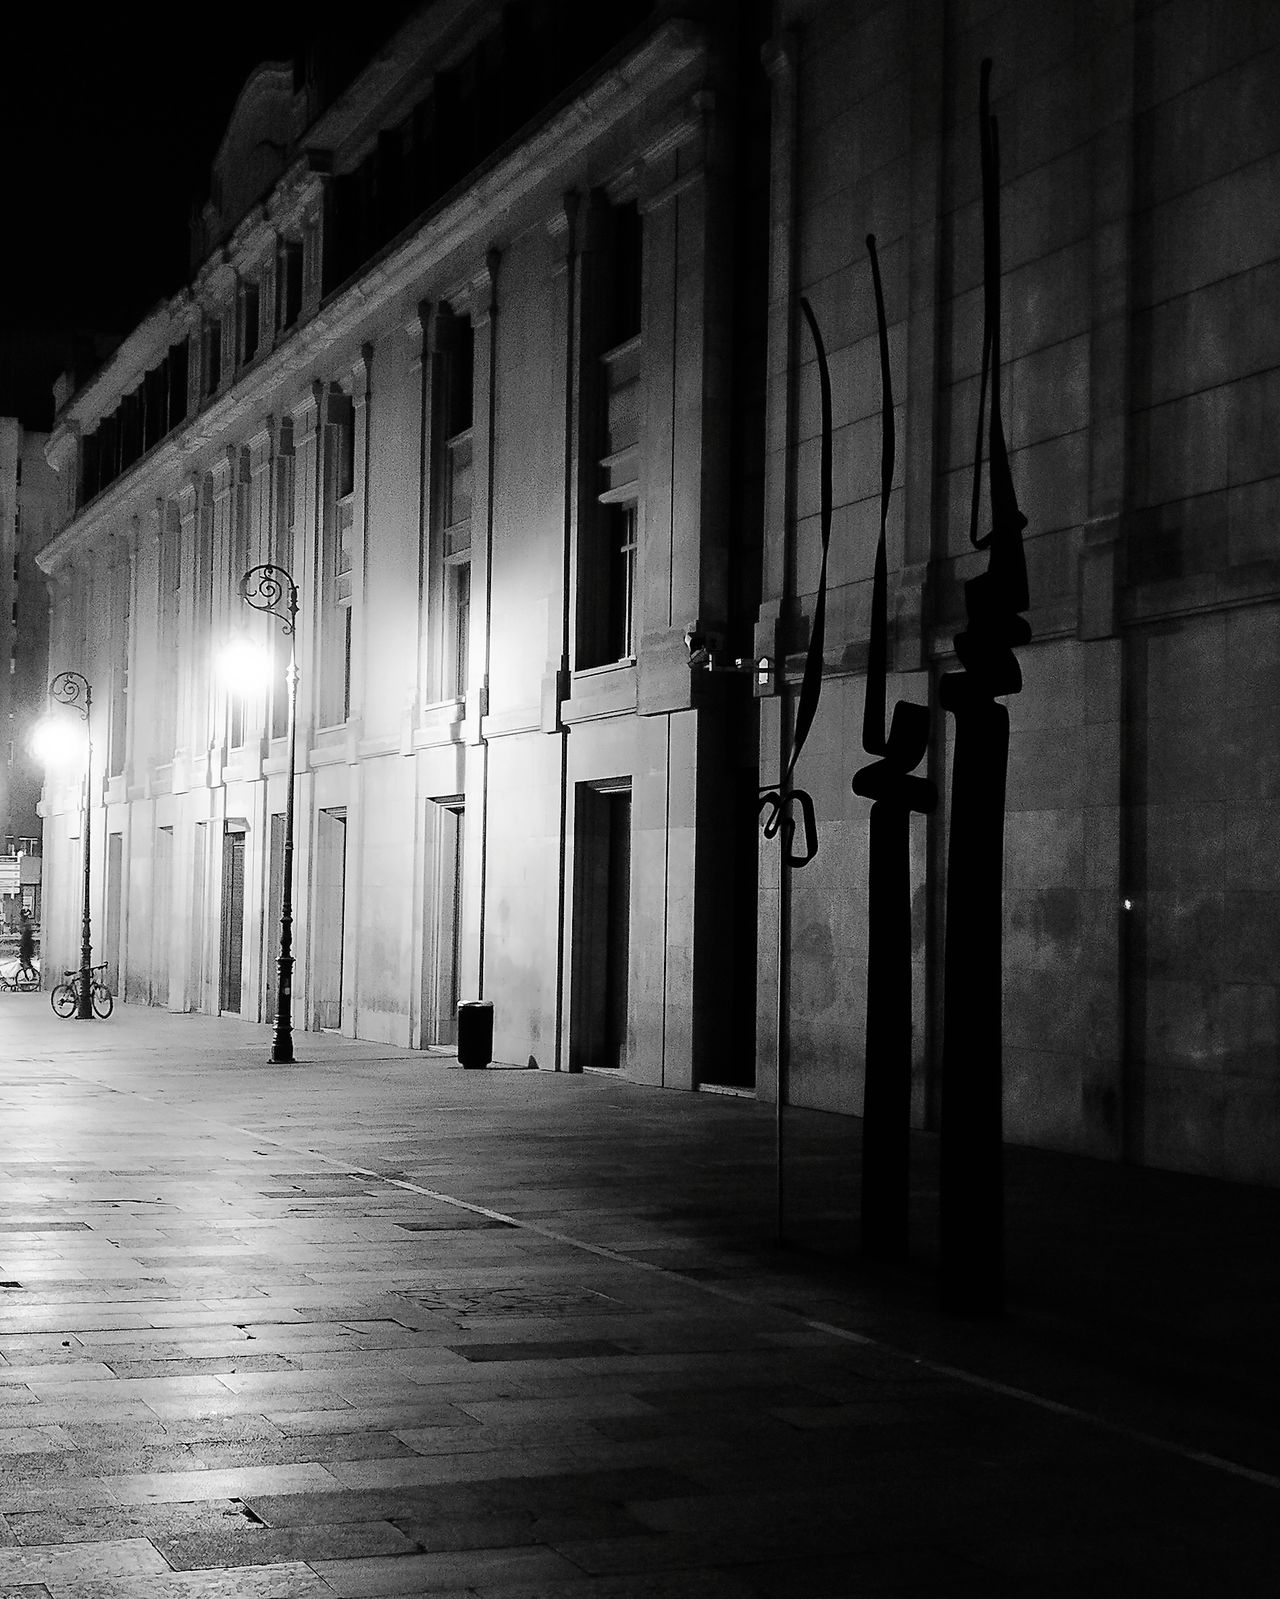 Calle Pilotos Regueral Architecture Night Illuminated Built Structure No People Outdoors Night Lights Nightphotography Building Exterior LeonEsp